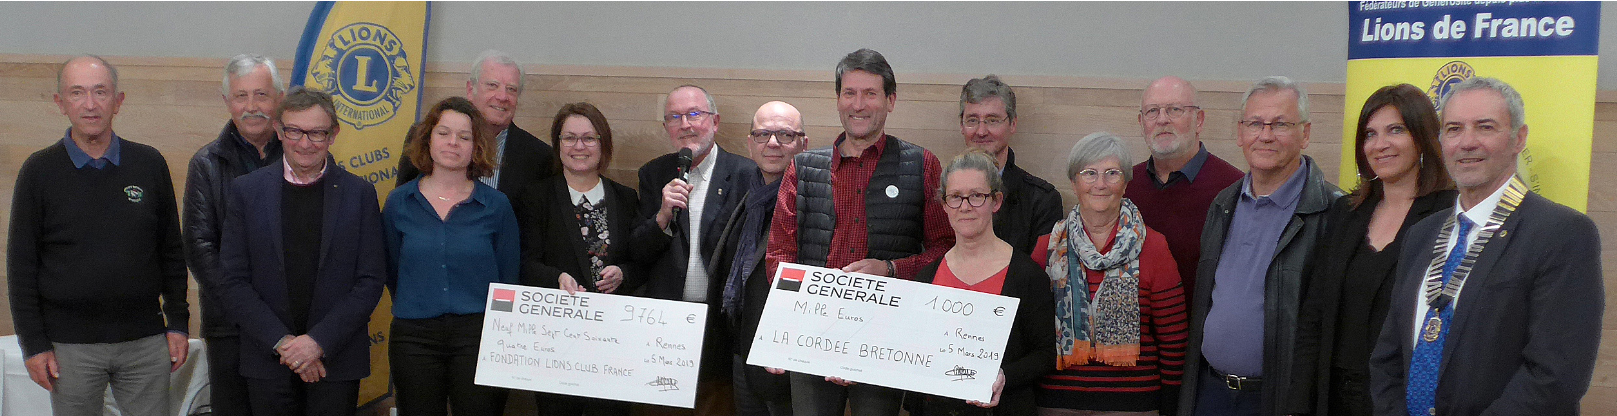 LA SECTION LISA DU LION'S CLUB DE RENNES CENTRE REMET UN CHÈQUE DE 1000 € A LA CORDÉE BRETONNE